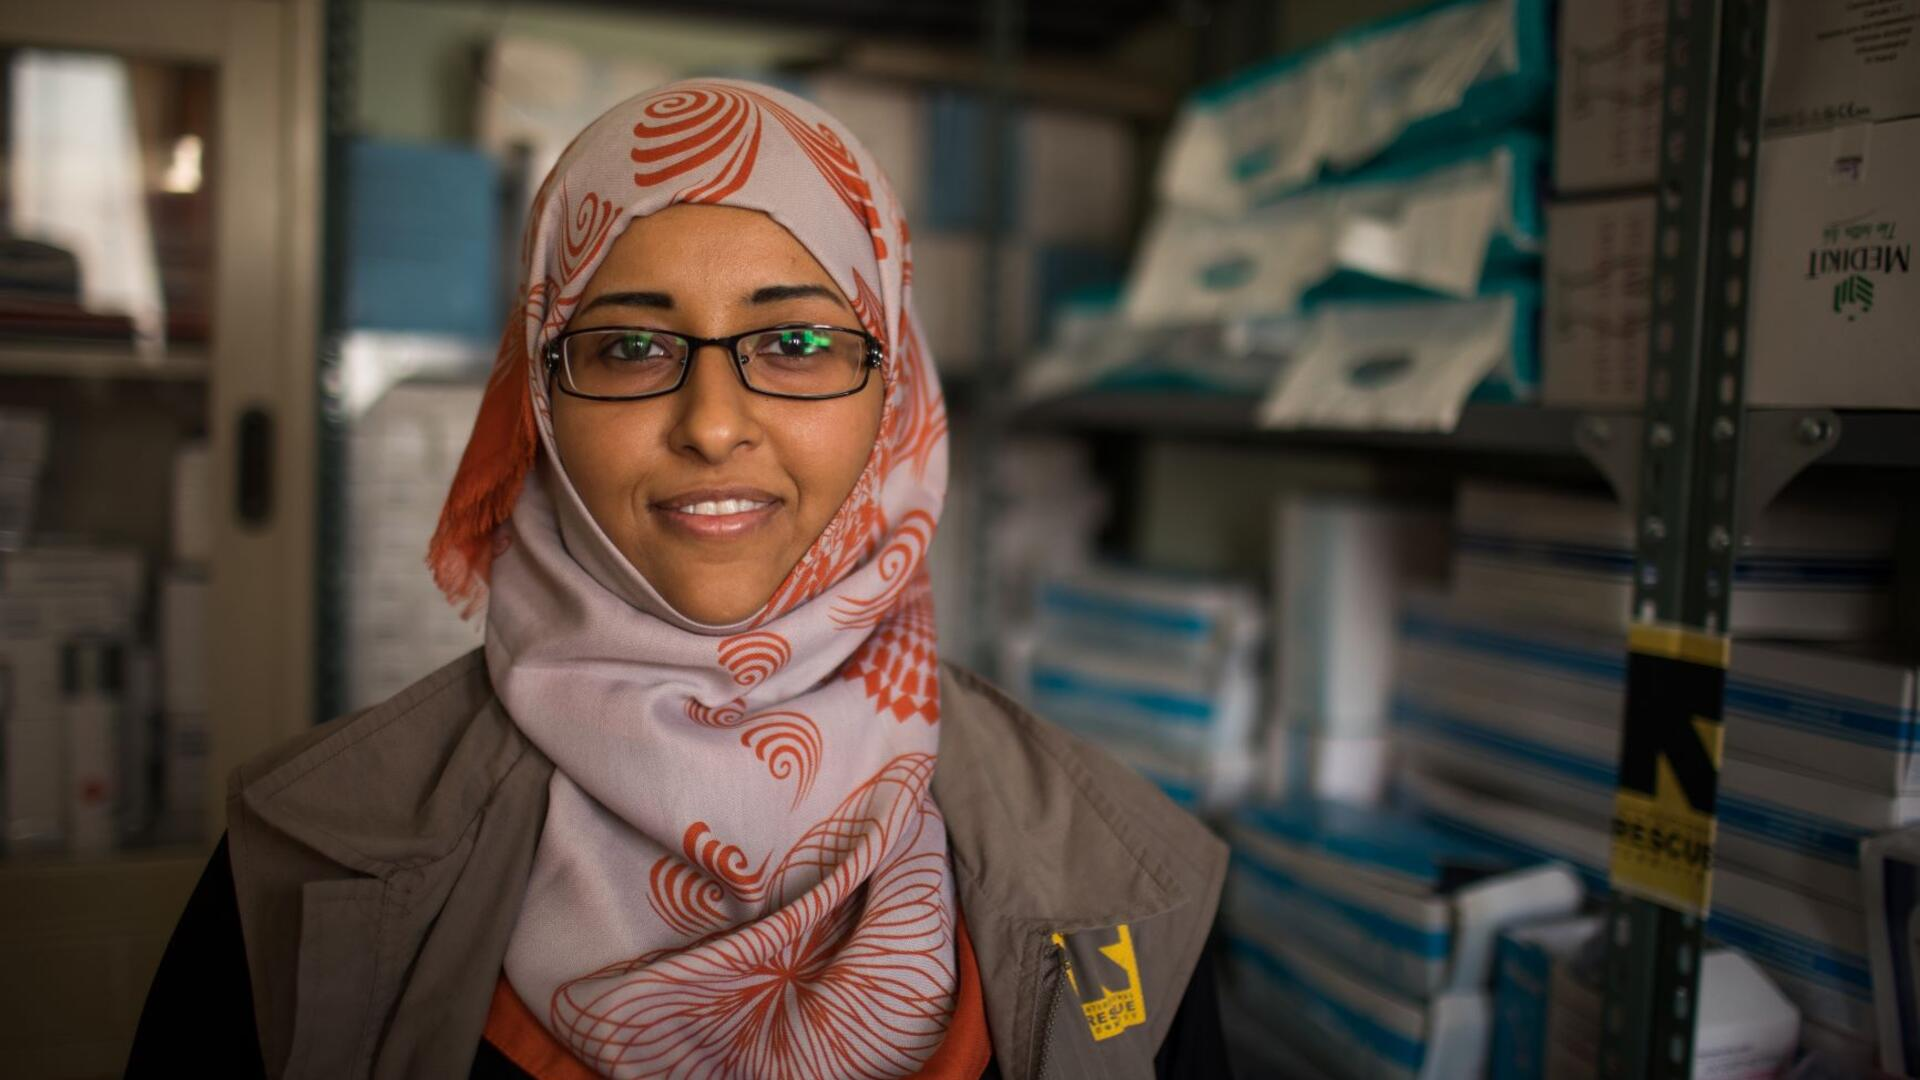 Dr. Rasha Rashed, a doctor and reproductive health manager for the IRC in Yemen, stands in a room with media supplies. She is wearing a red and white scarf and an IRC-branded vest.